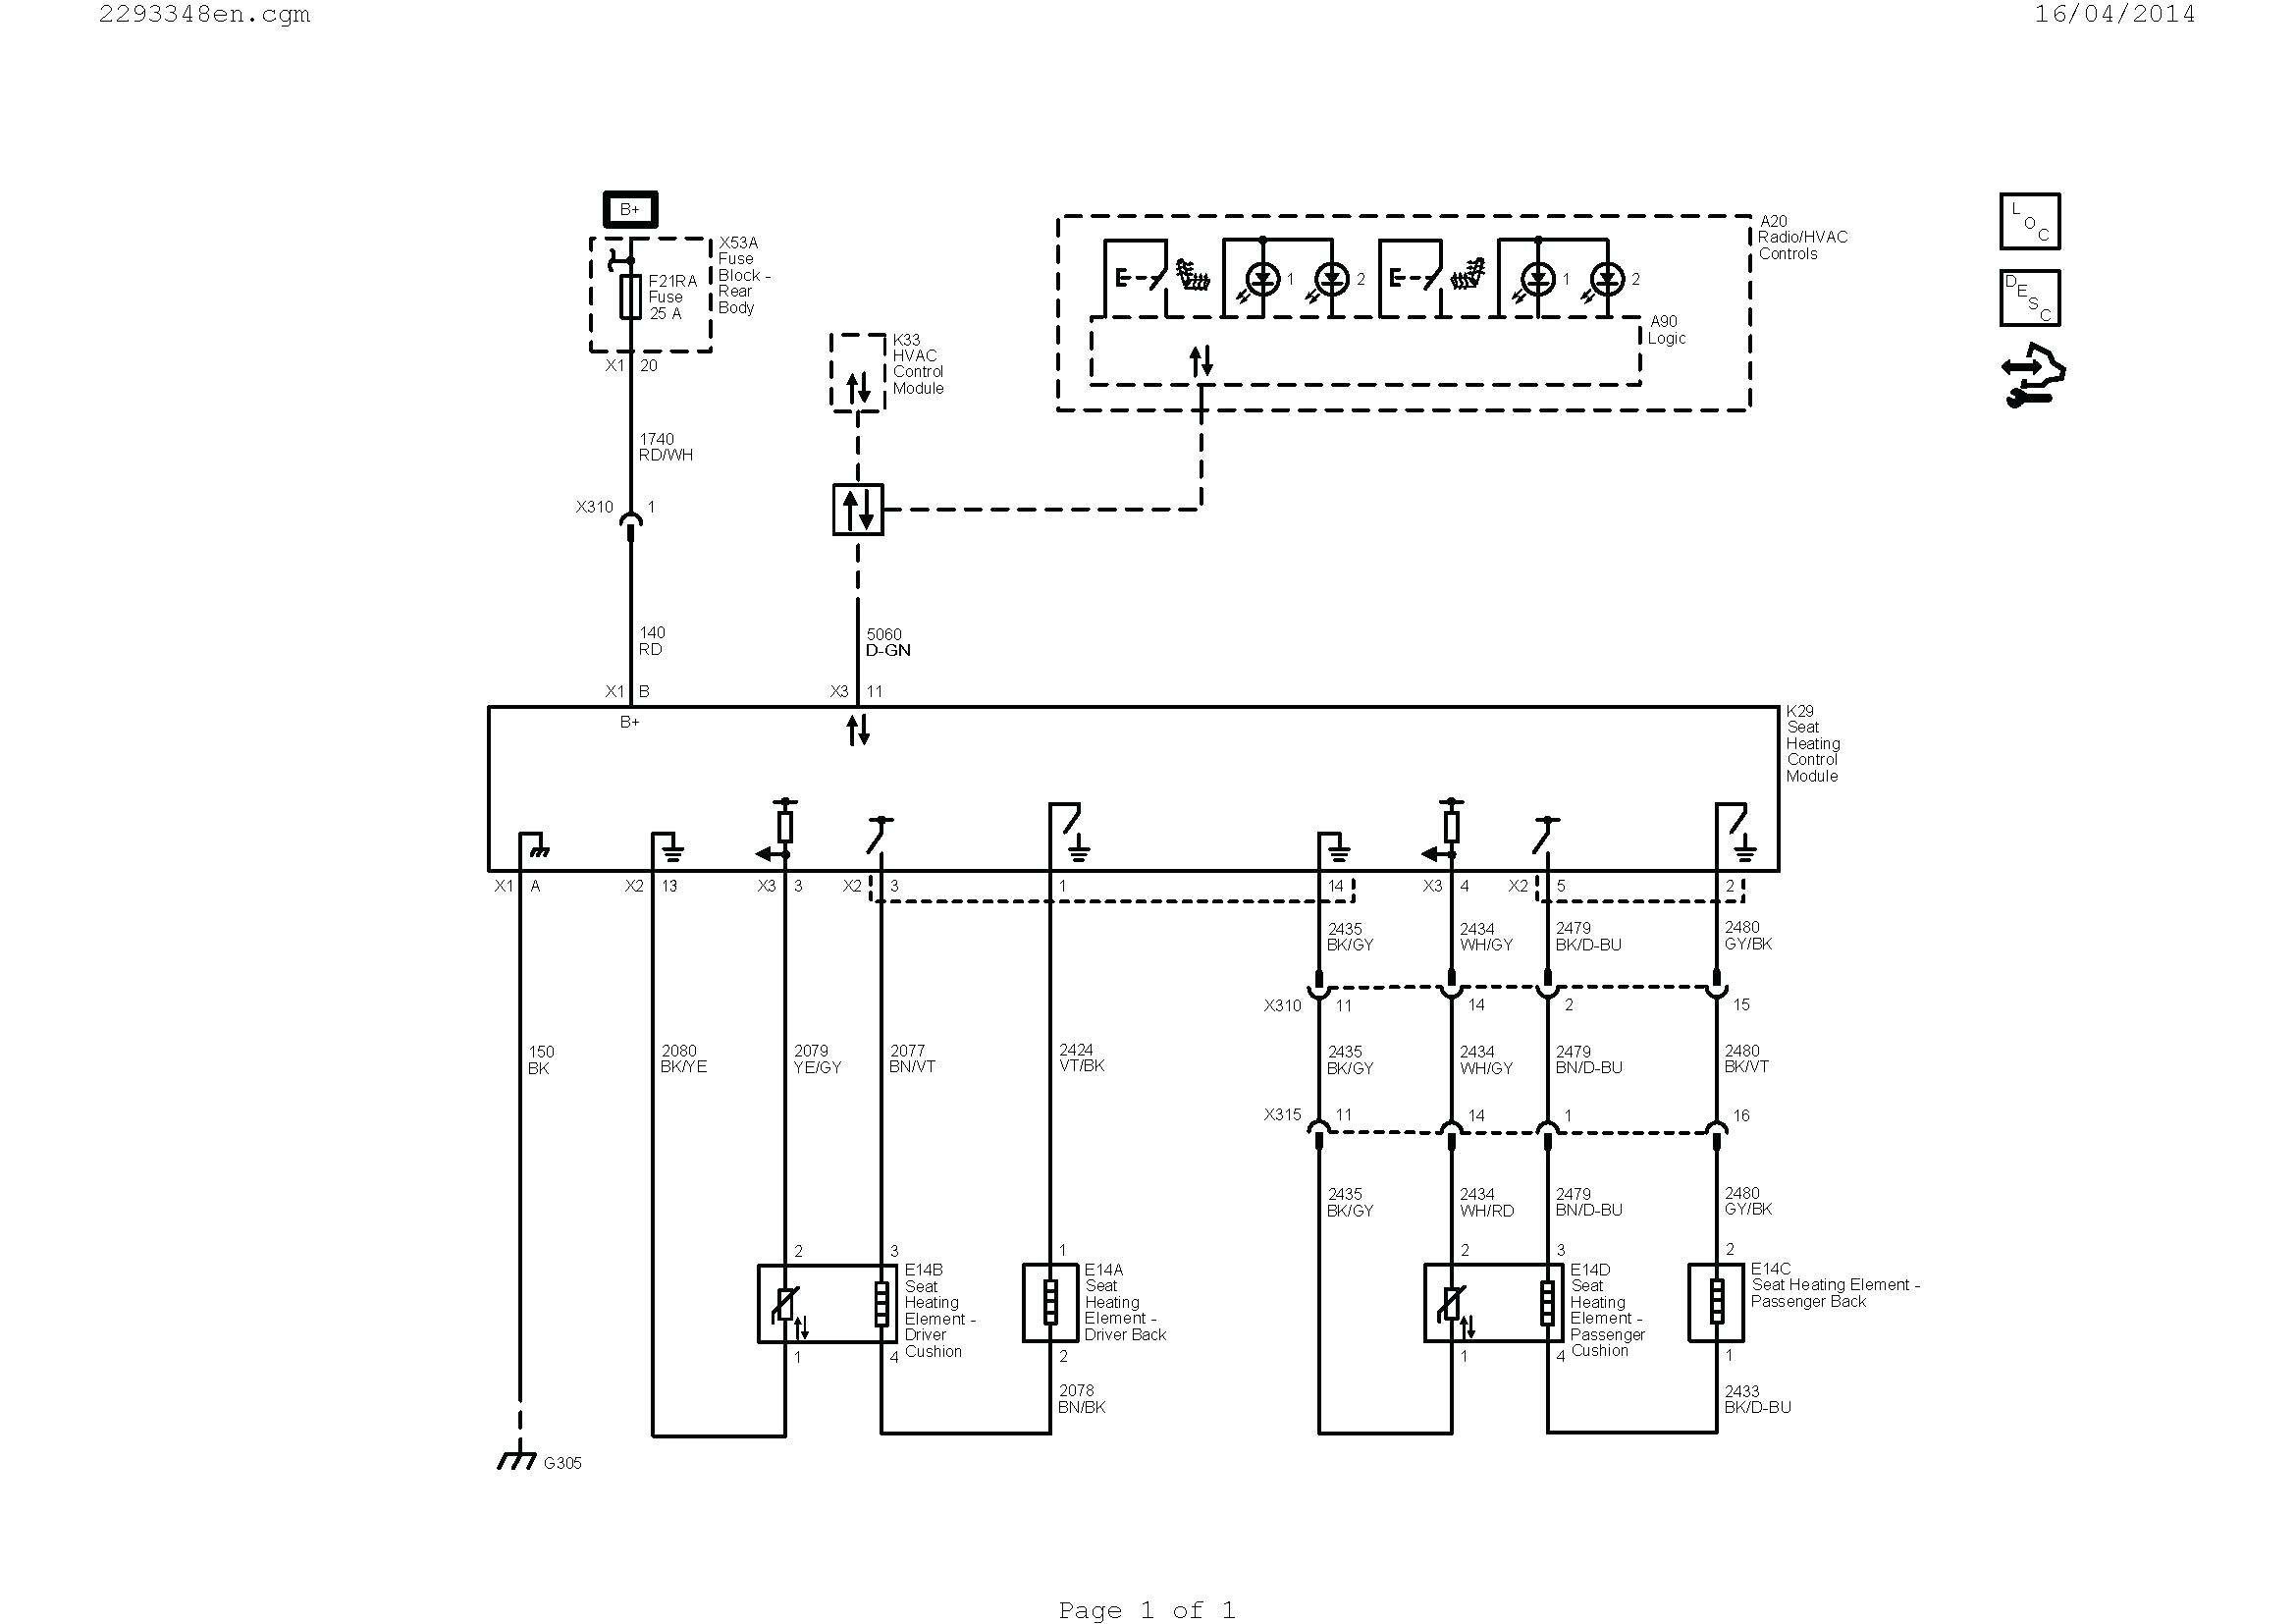 vectra b xenon wiring diagram 220v single phase plug for vauxhall library amazing astra gallery everything you need